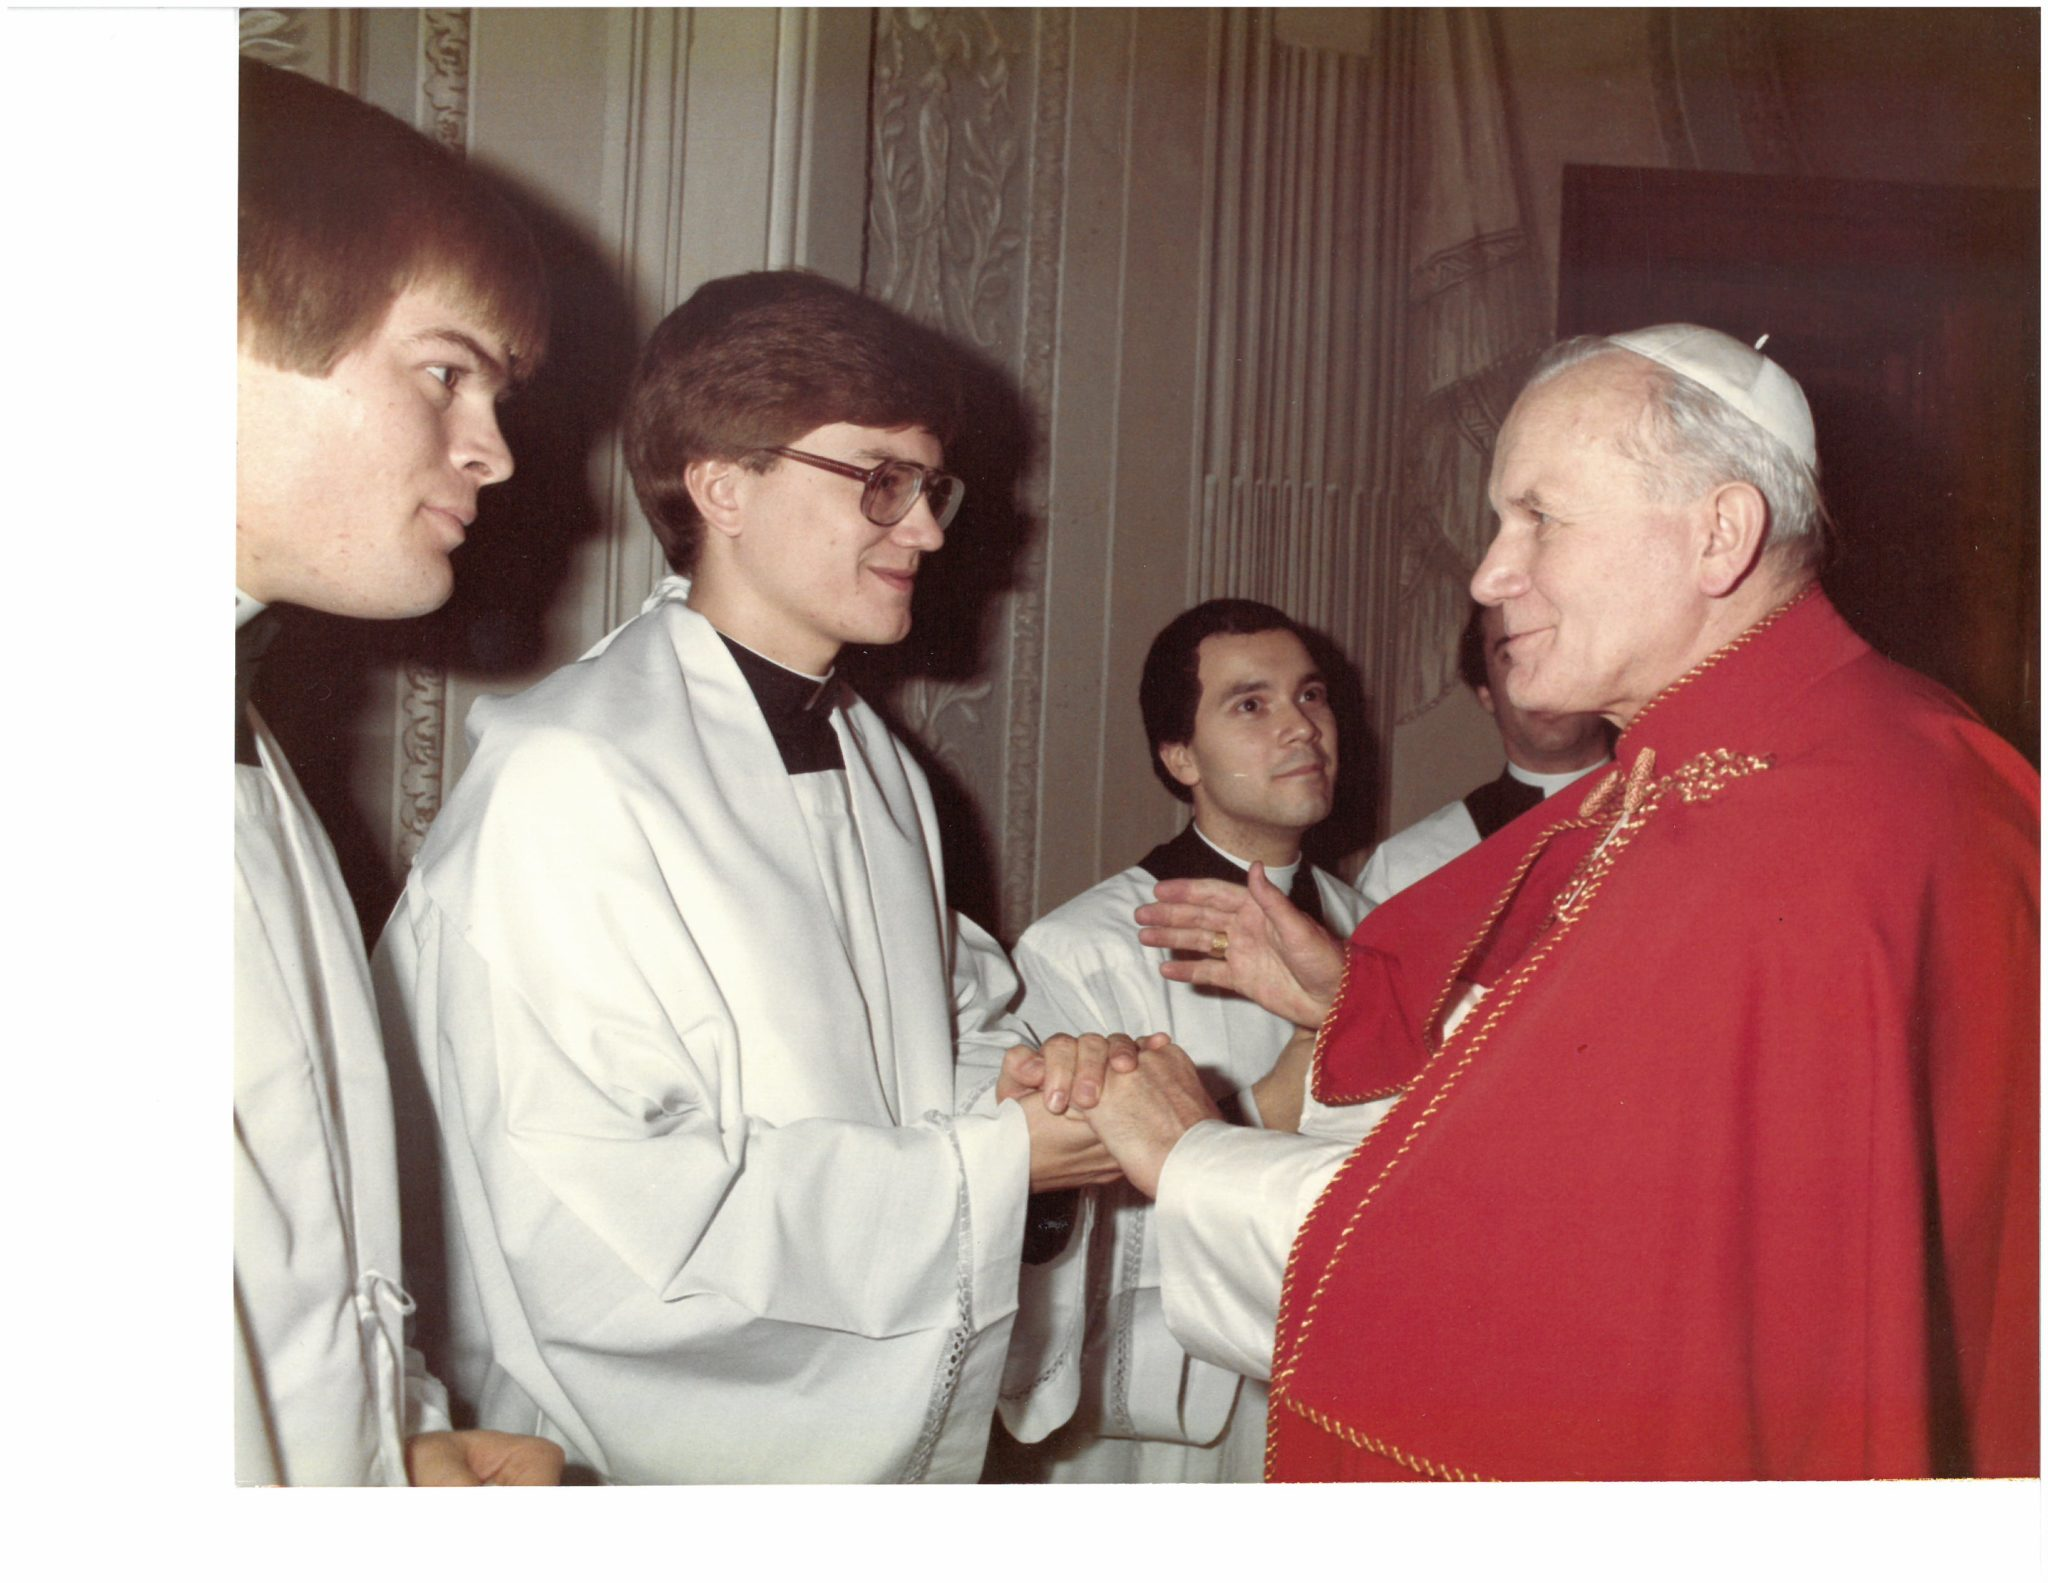 St. Pope John Paul after Midnight Mass, Christmas 1982